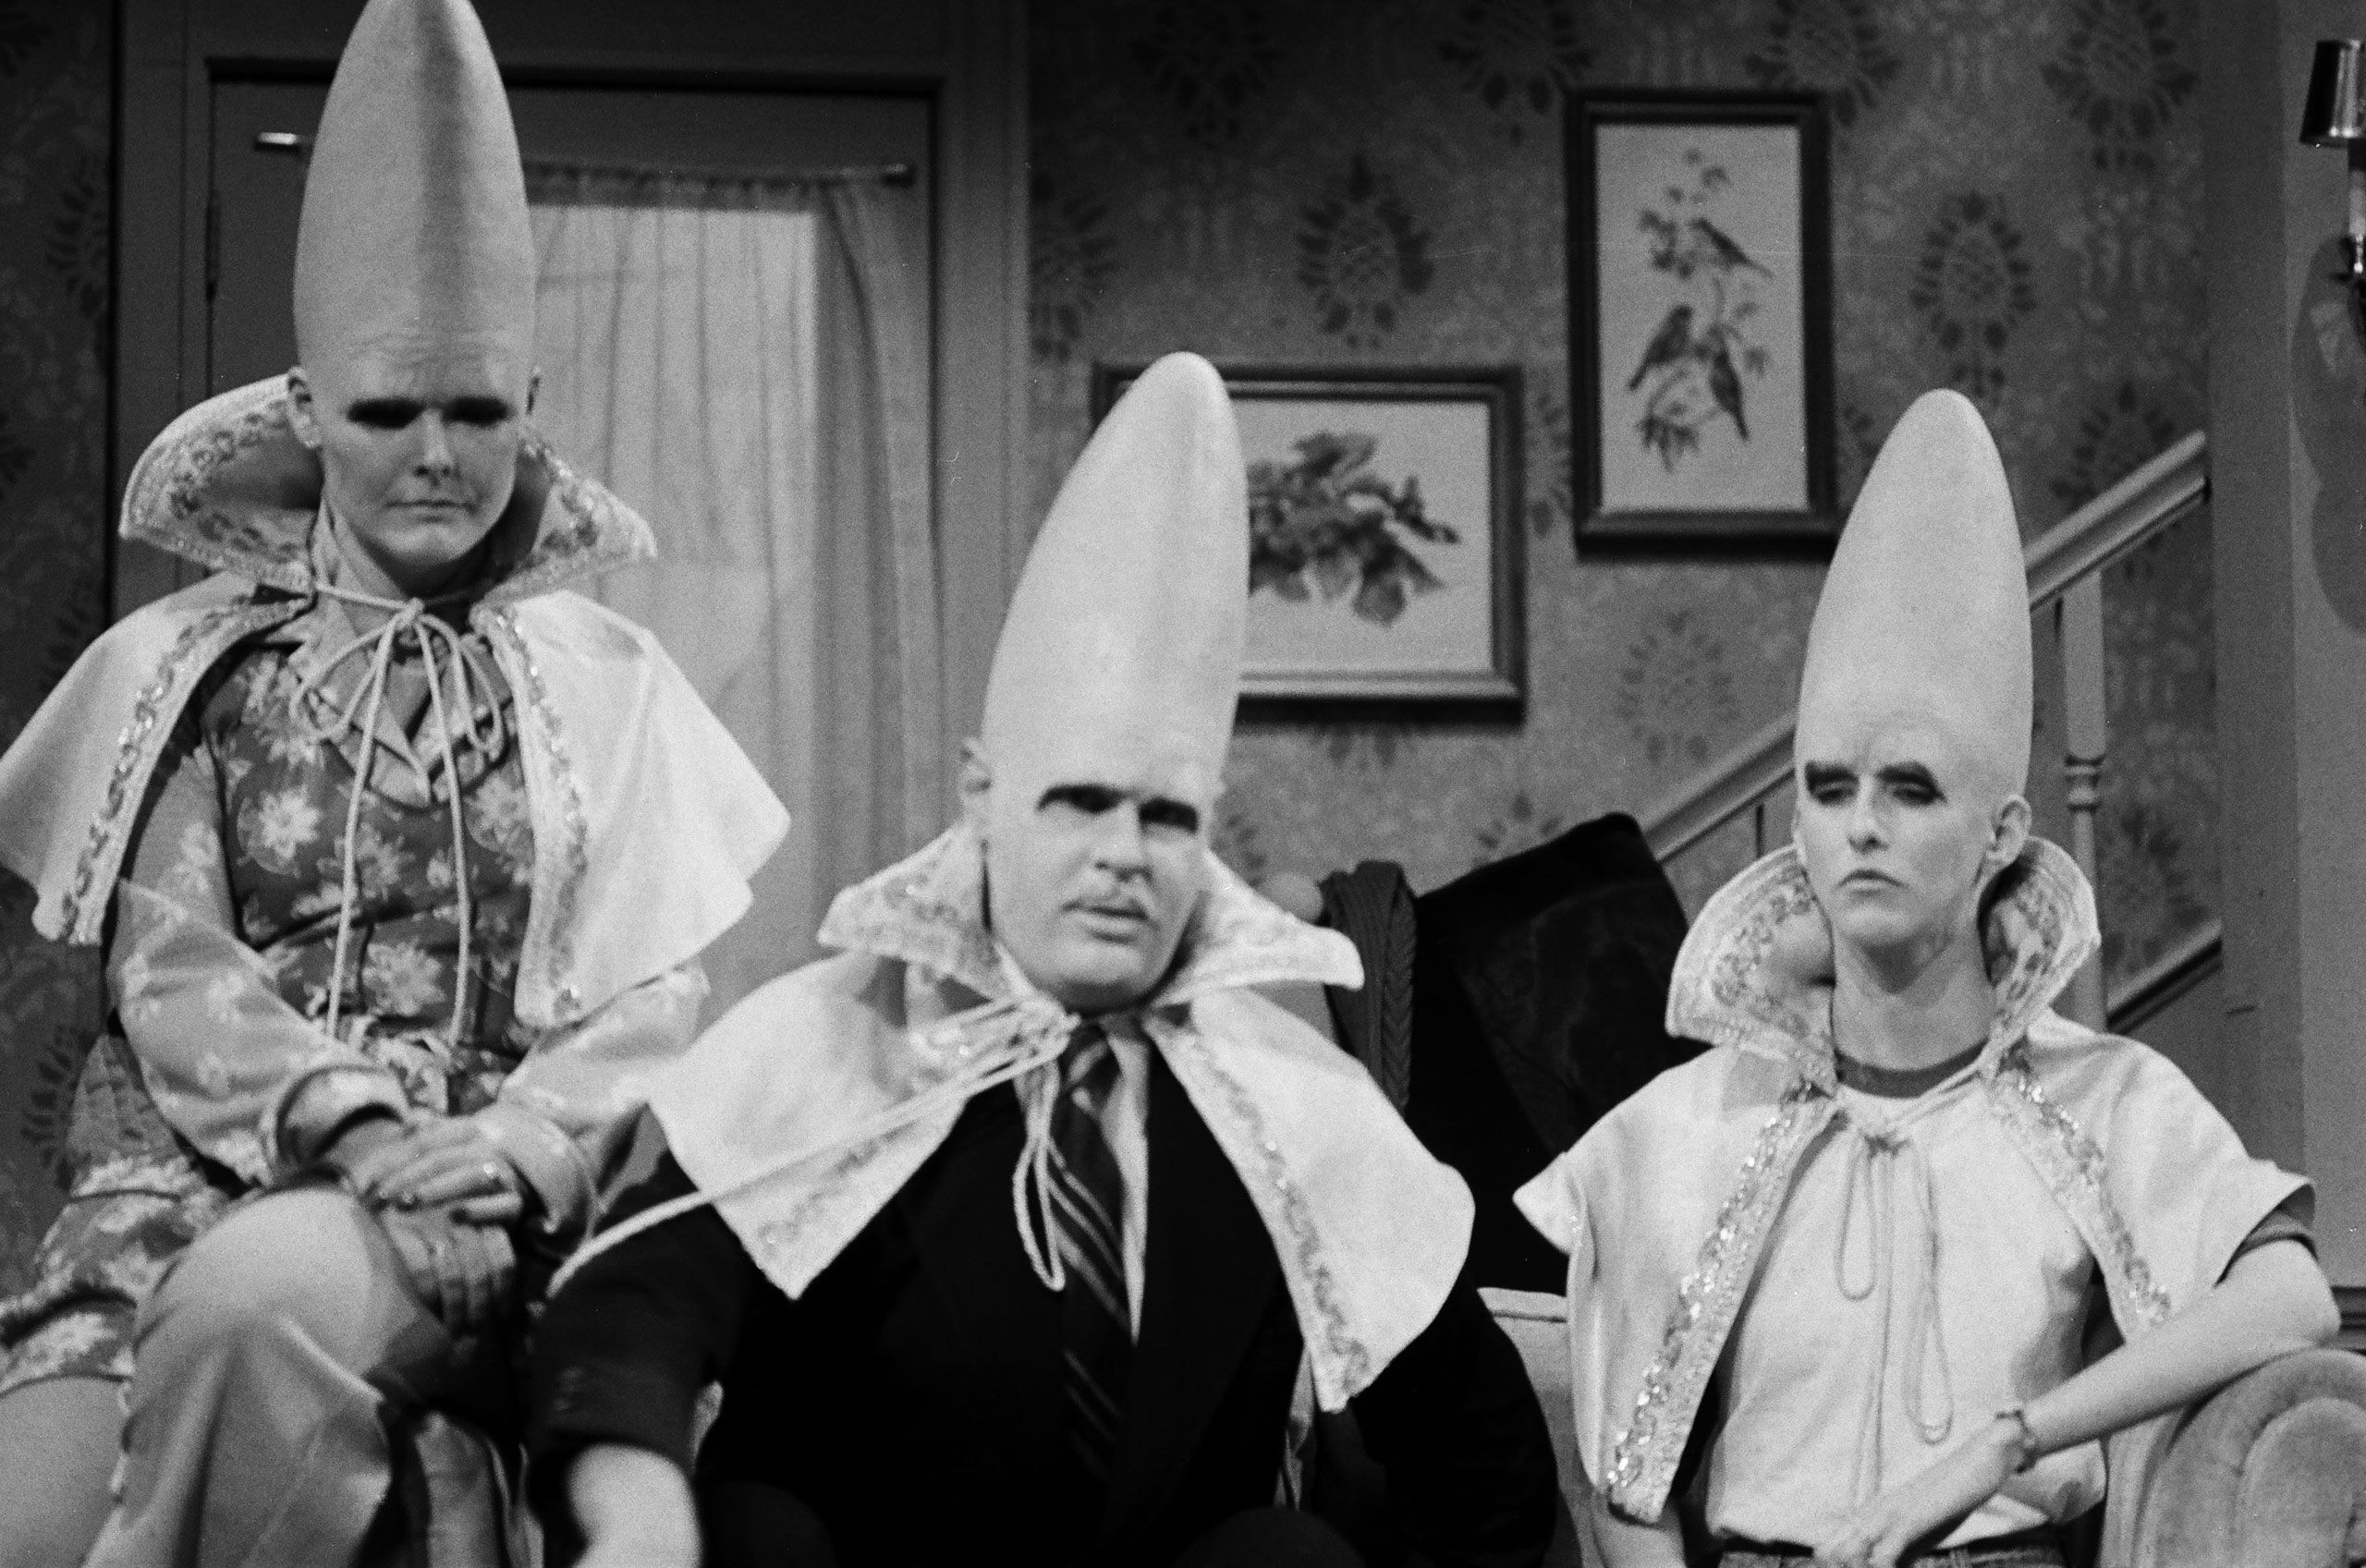 From left: Jane Curtin as Prymaat Conehead, Dan Aykroyd as Beldar Conehead and Laraine Newman as Connie Conehead during the The Coneheads at Home skit on Jan. 15, 1977.